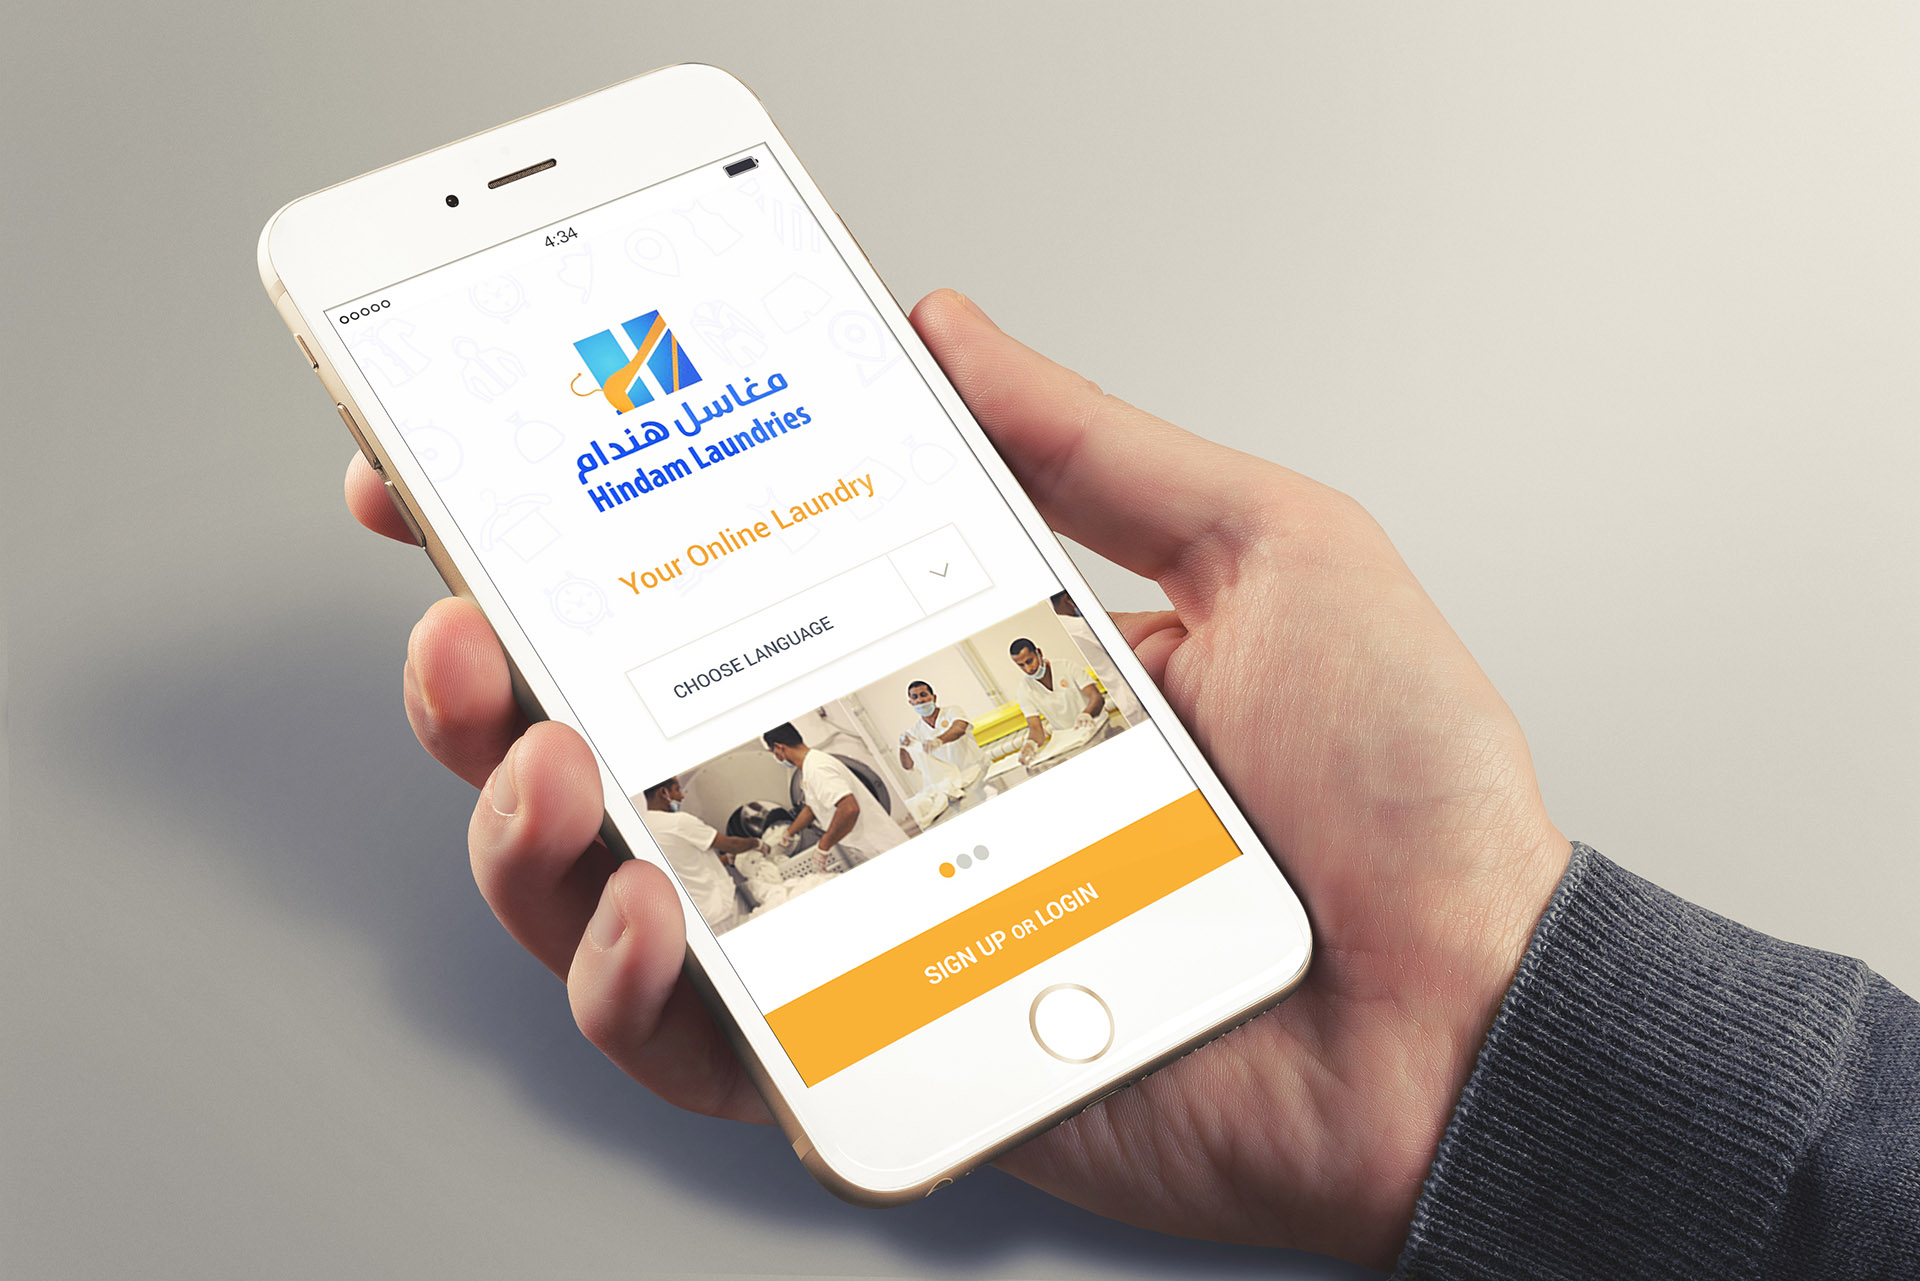 A man holding an iPhone running the Hindam Laundry Application showing the welcome page